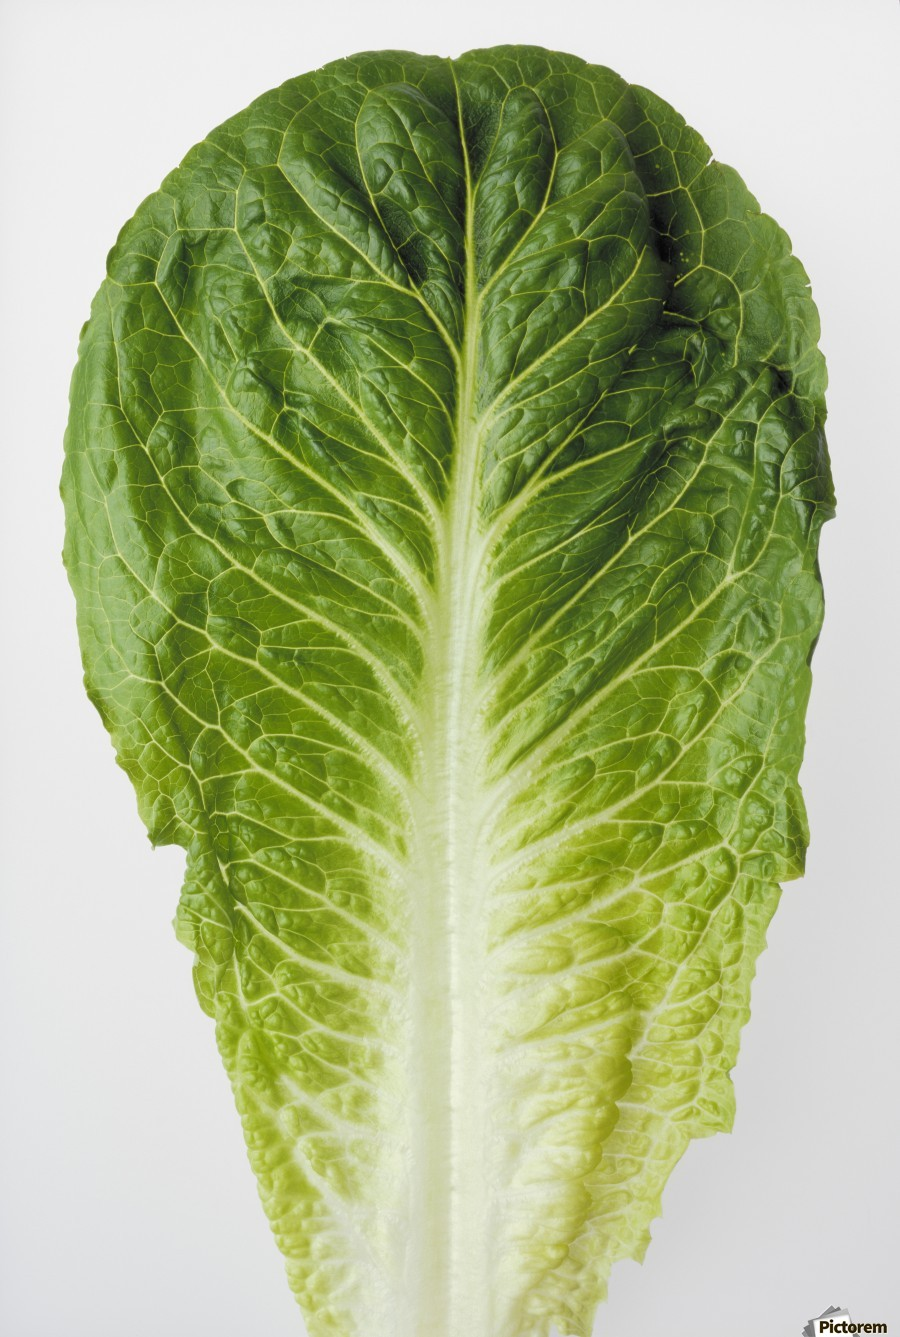 Agriculture - Closeup of a Romaine lettuce leaf on a white surface, studio.  Print